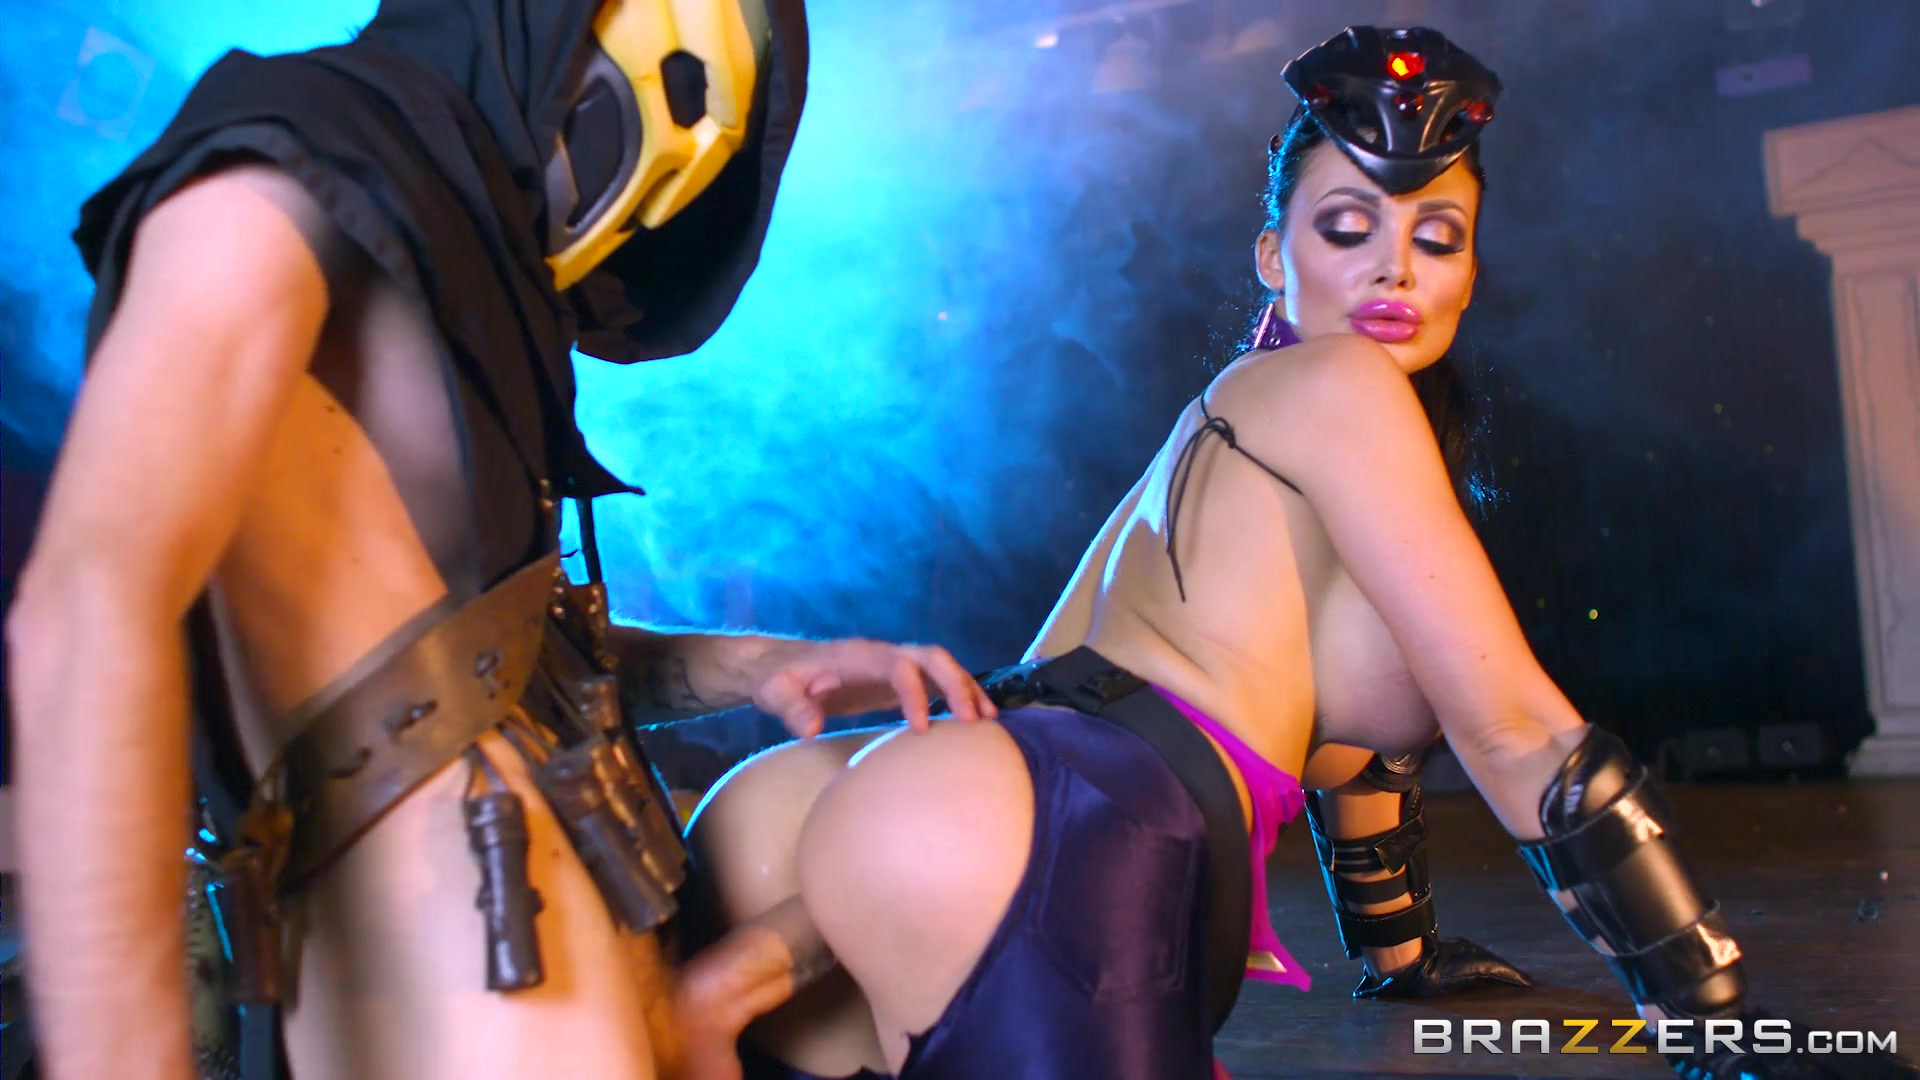 Sexy Dark Haired Aletta Ocean Gets Fucked by a Guy in a Mask Starring: Aletta Ocean Length: 32 min